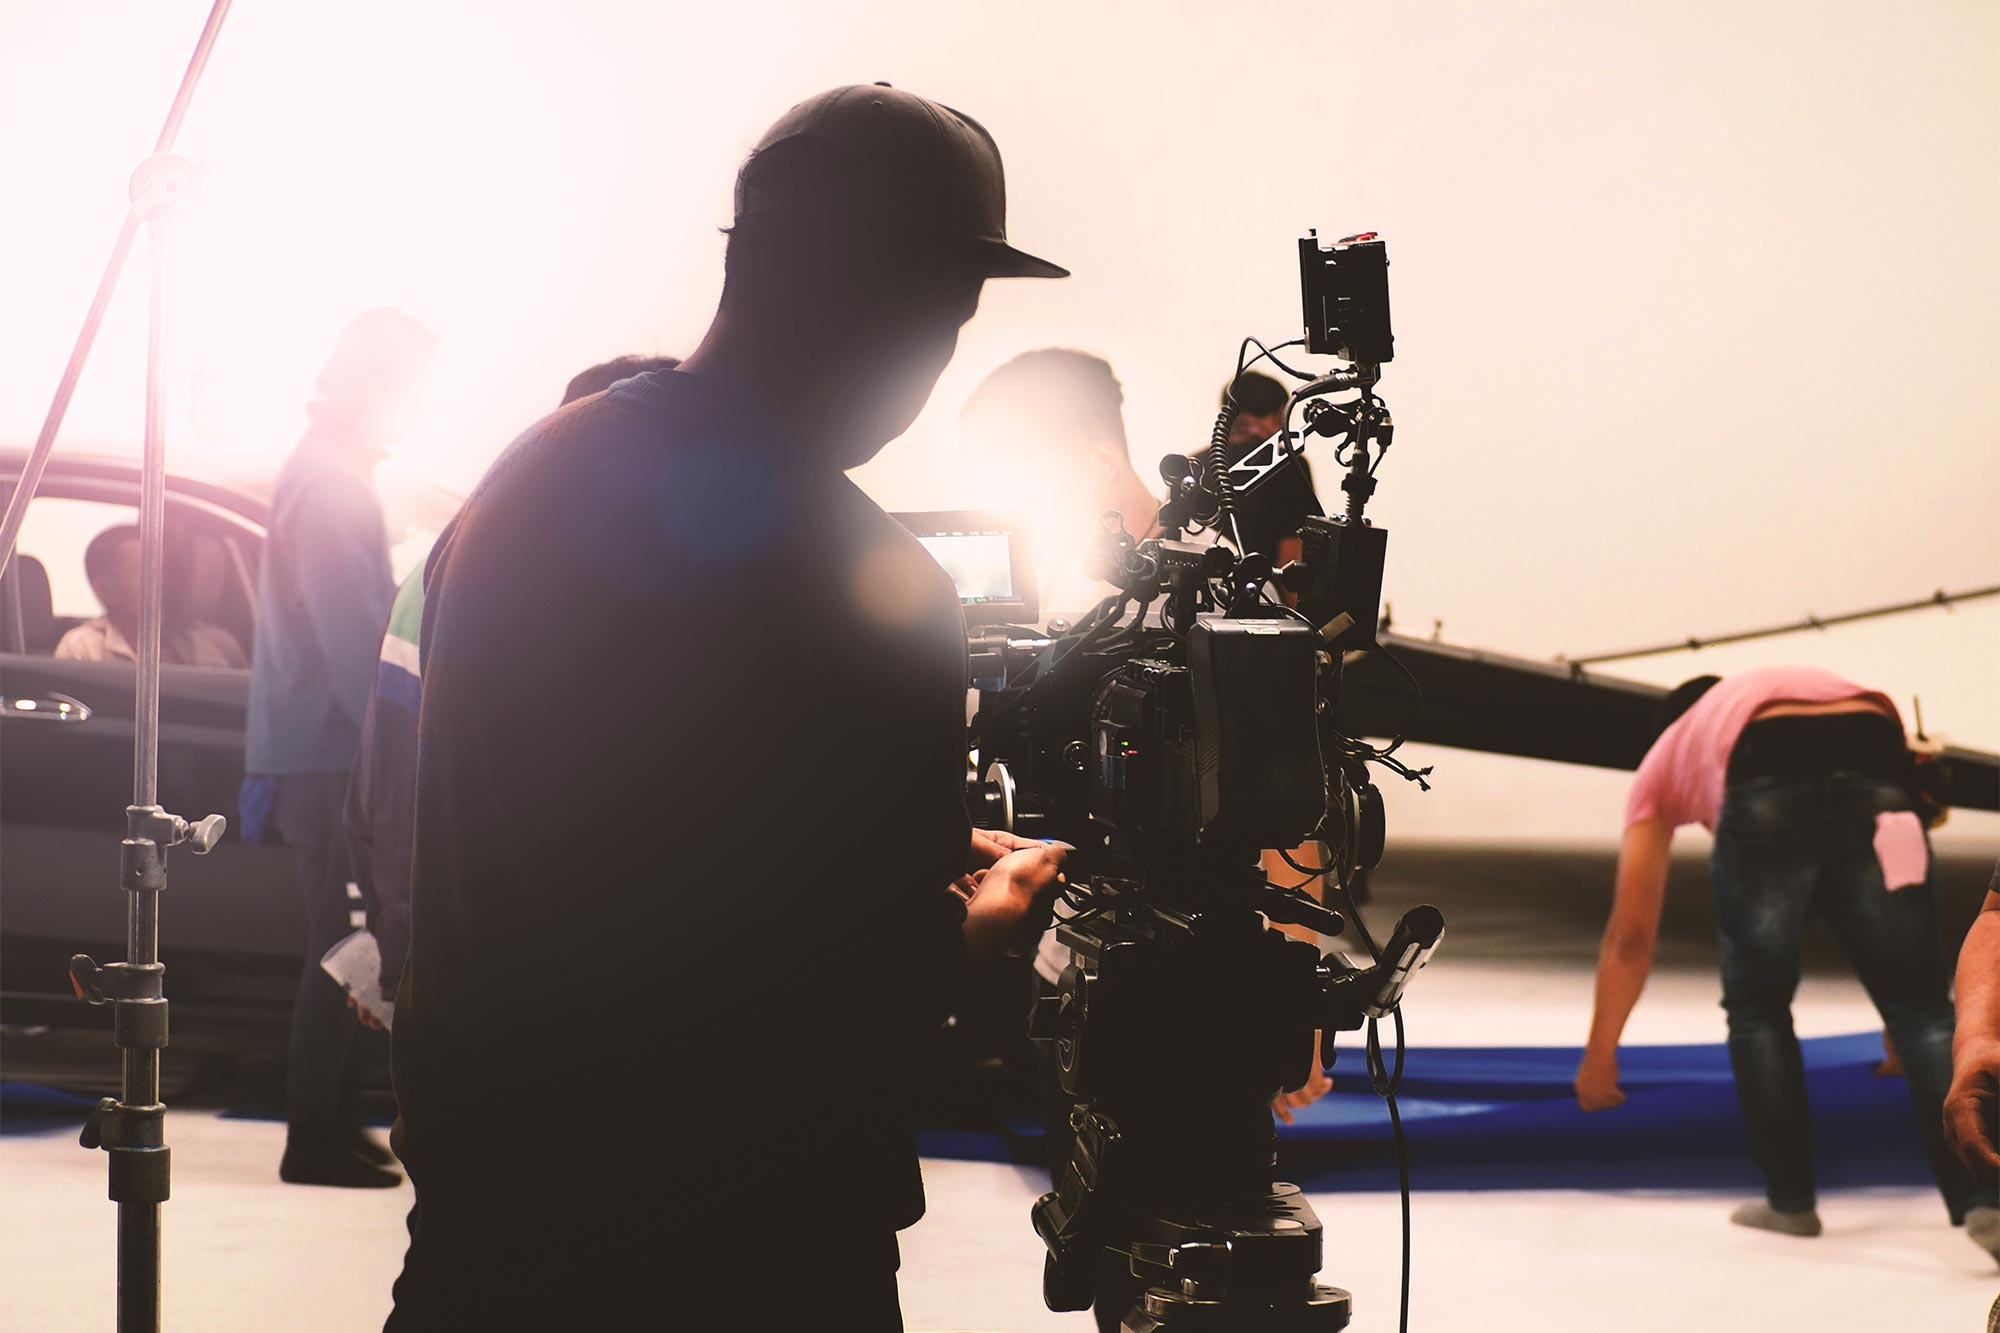 Video camera in film or movie production